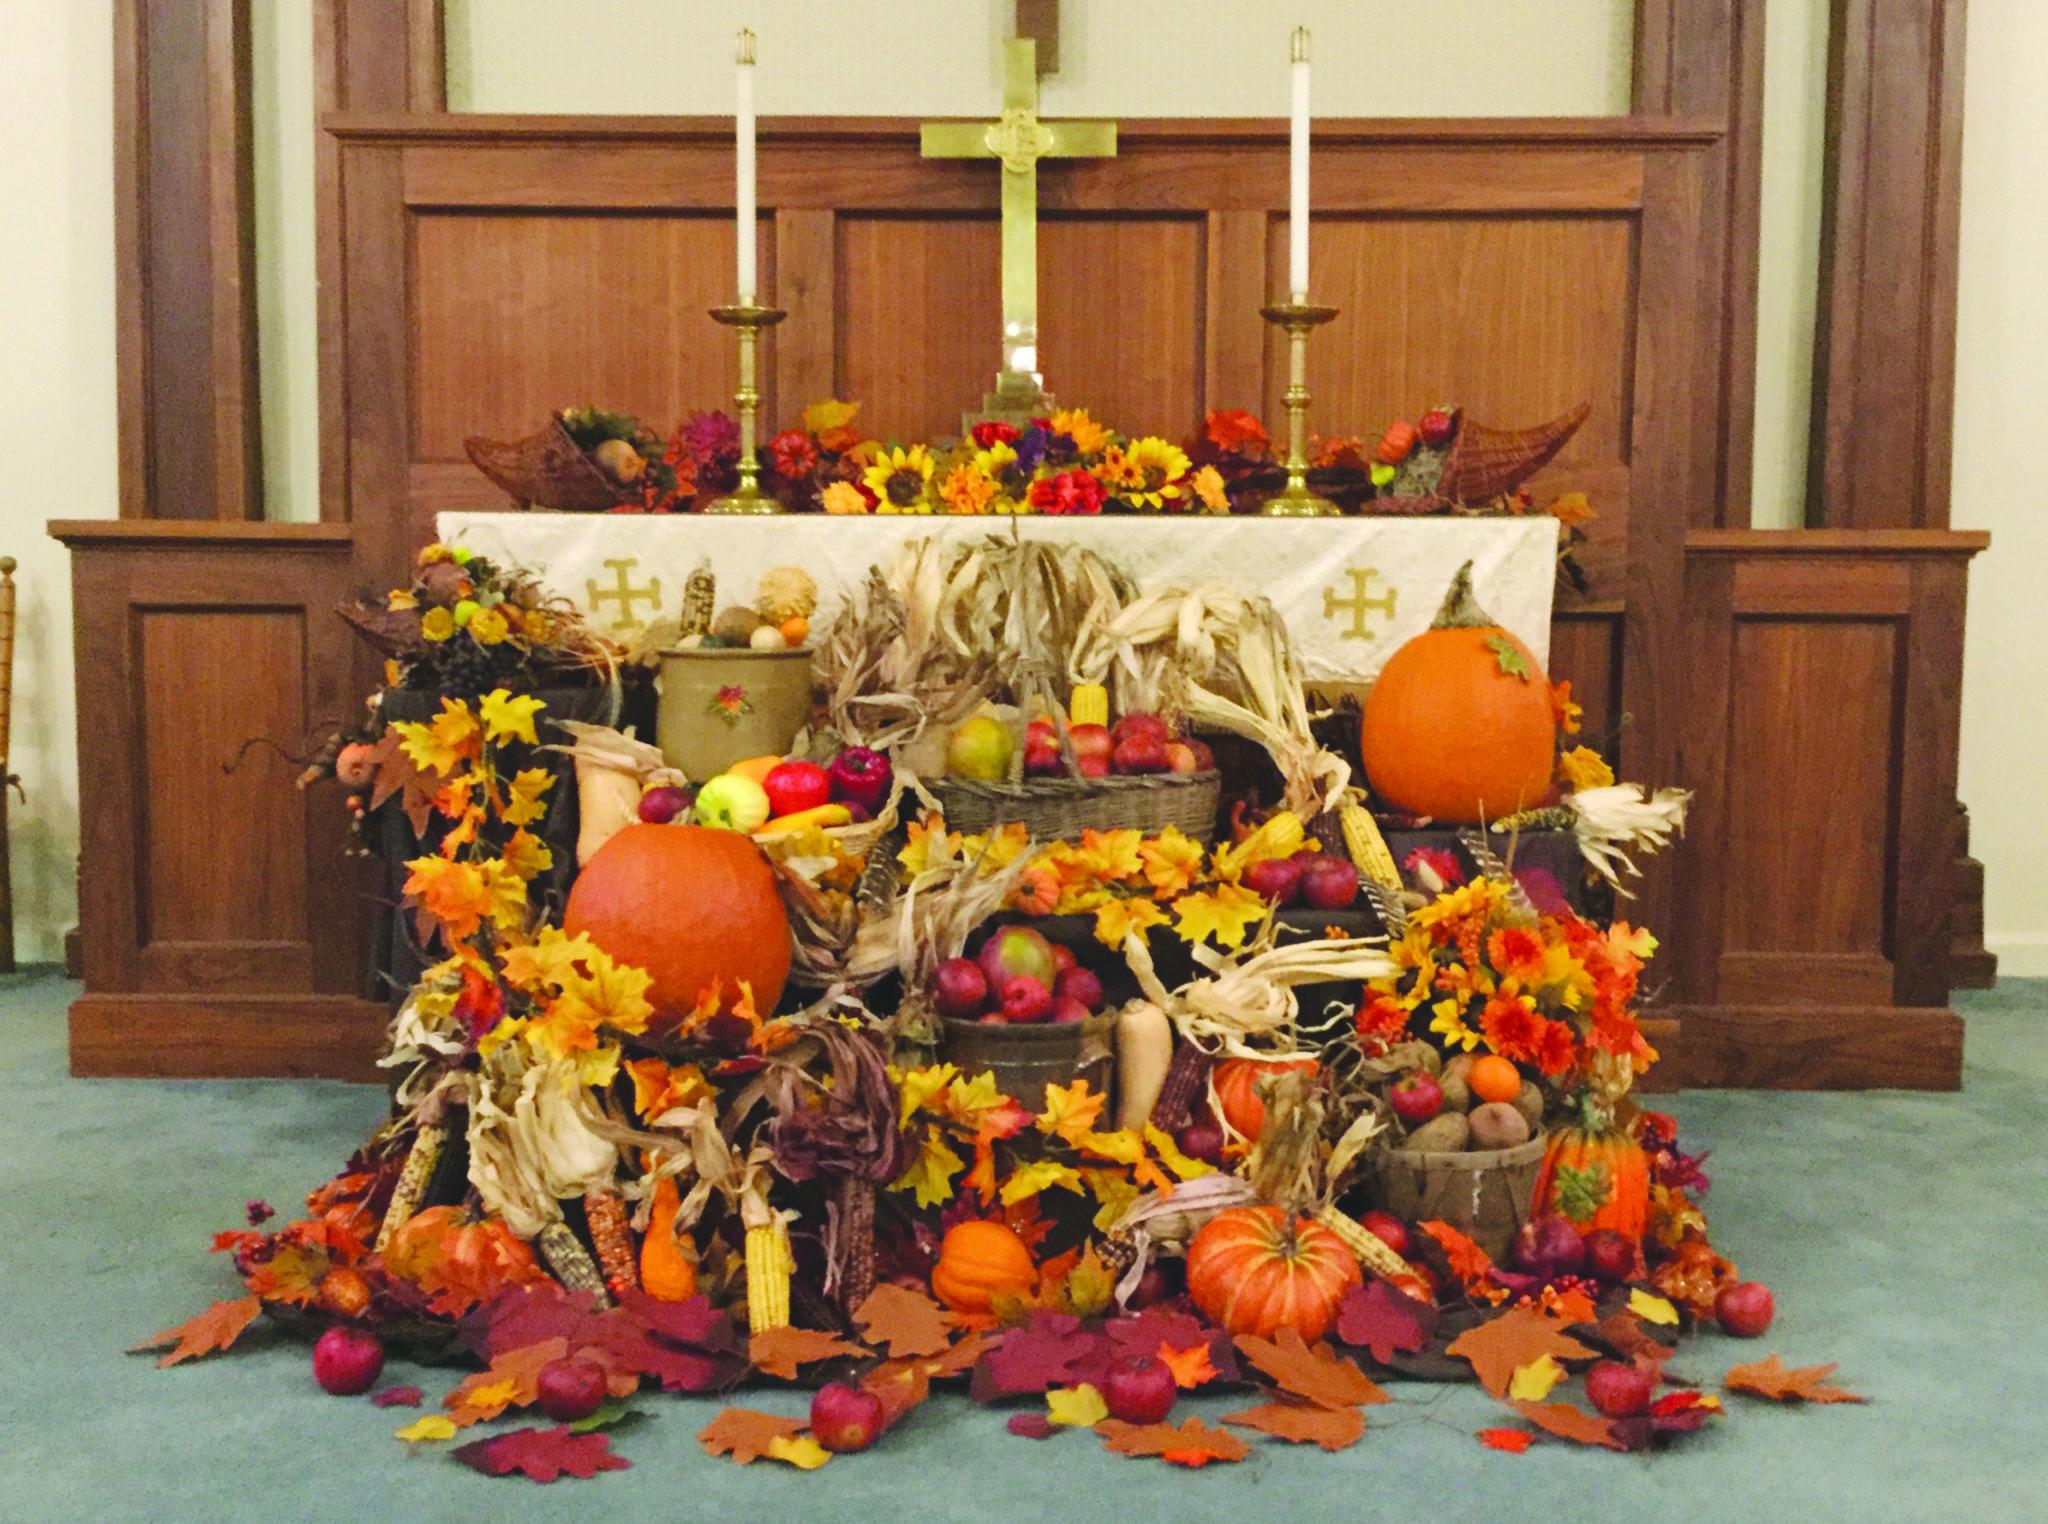 Community Thanksgiving service Nov. 18